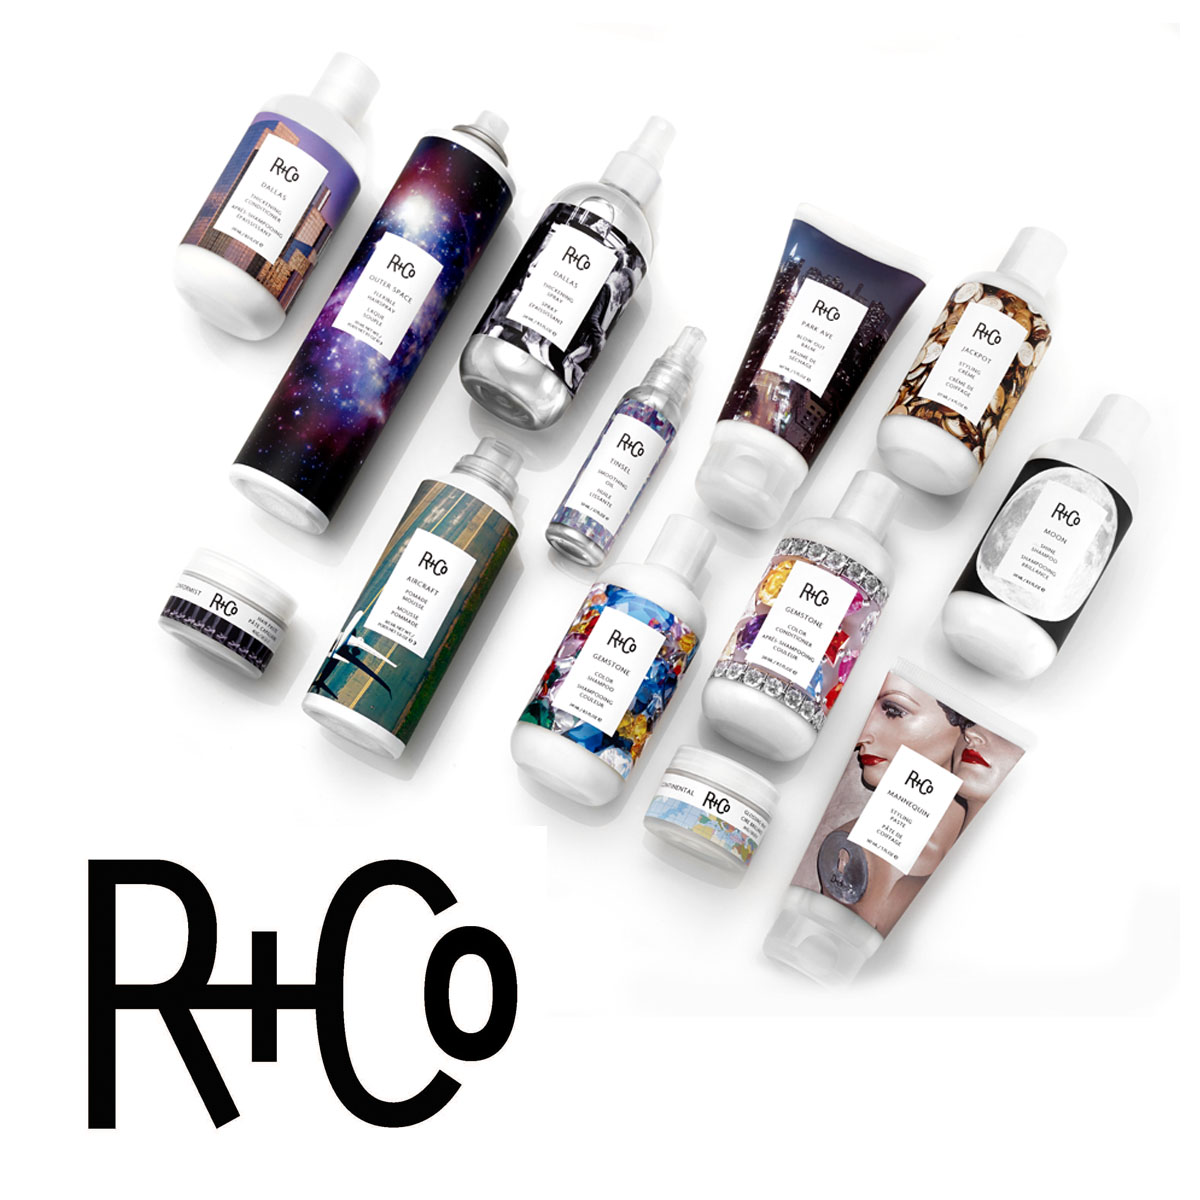 R+Co is about an experience.    R+Co  is a collective of some of the most forward-thinking, rule-bending hairstylists in the business. We are a think tank of top editorial and salon stylists and educators—with a combined century of hairdressing knowledge and experience—and we make sure that we have more than one viewpoint on everything we do.    And everything is formulated without parabens, sulfates (SLS or SLES), mineral oil and petrolatum. They are all vegan, cruelty-free, gluten-free and color-safe.  R+Co is about an experience. The packaging and fragrances were designed to enhance that experience and evoke a feeling, place, style or attitude. You'll know just by looking at a bottle or tube what a product is meant to do, and the subtle yet sophisticated fragrances—meant for both men and women—are as individual as the members of our collective.